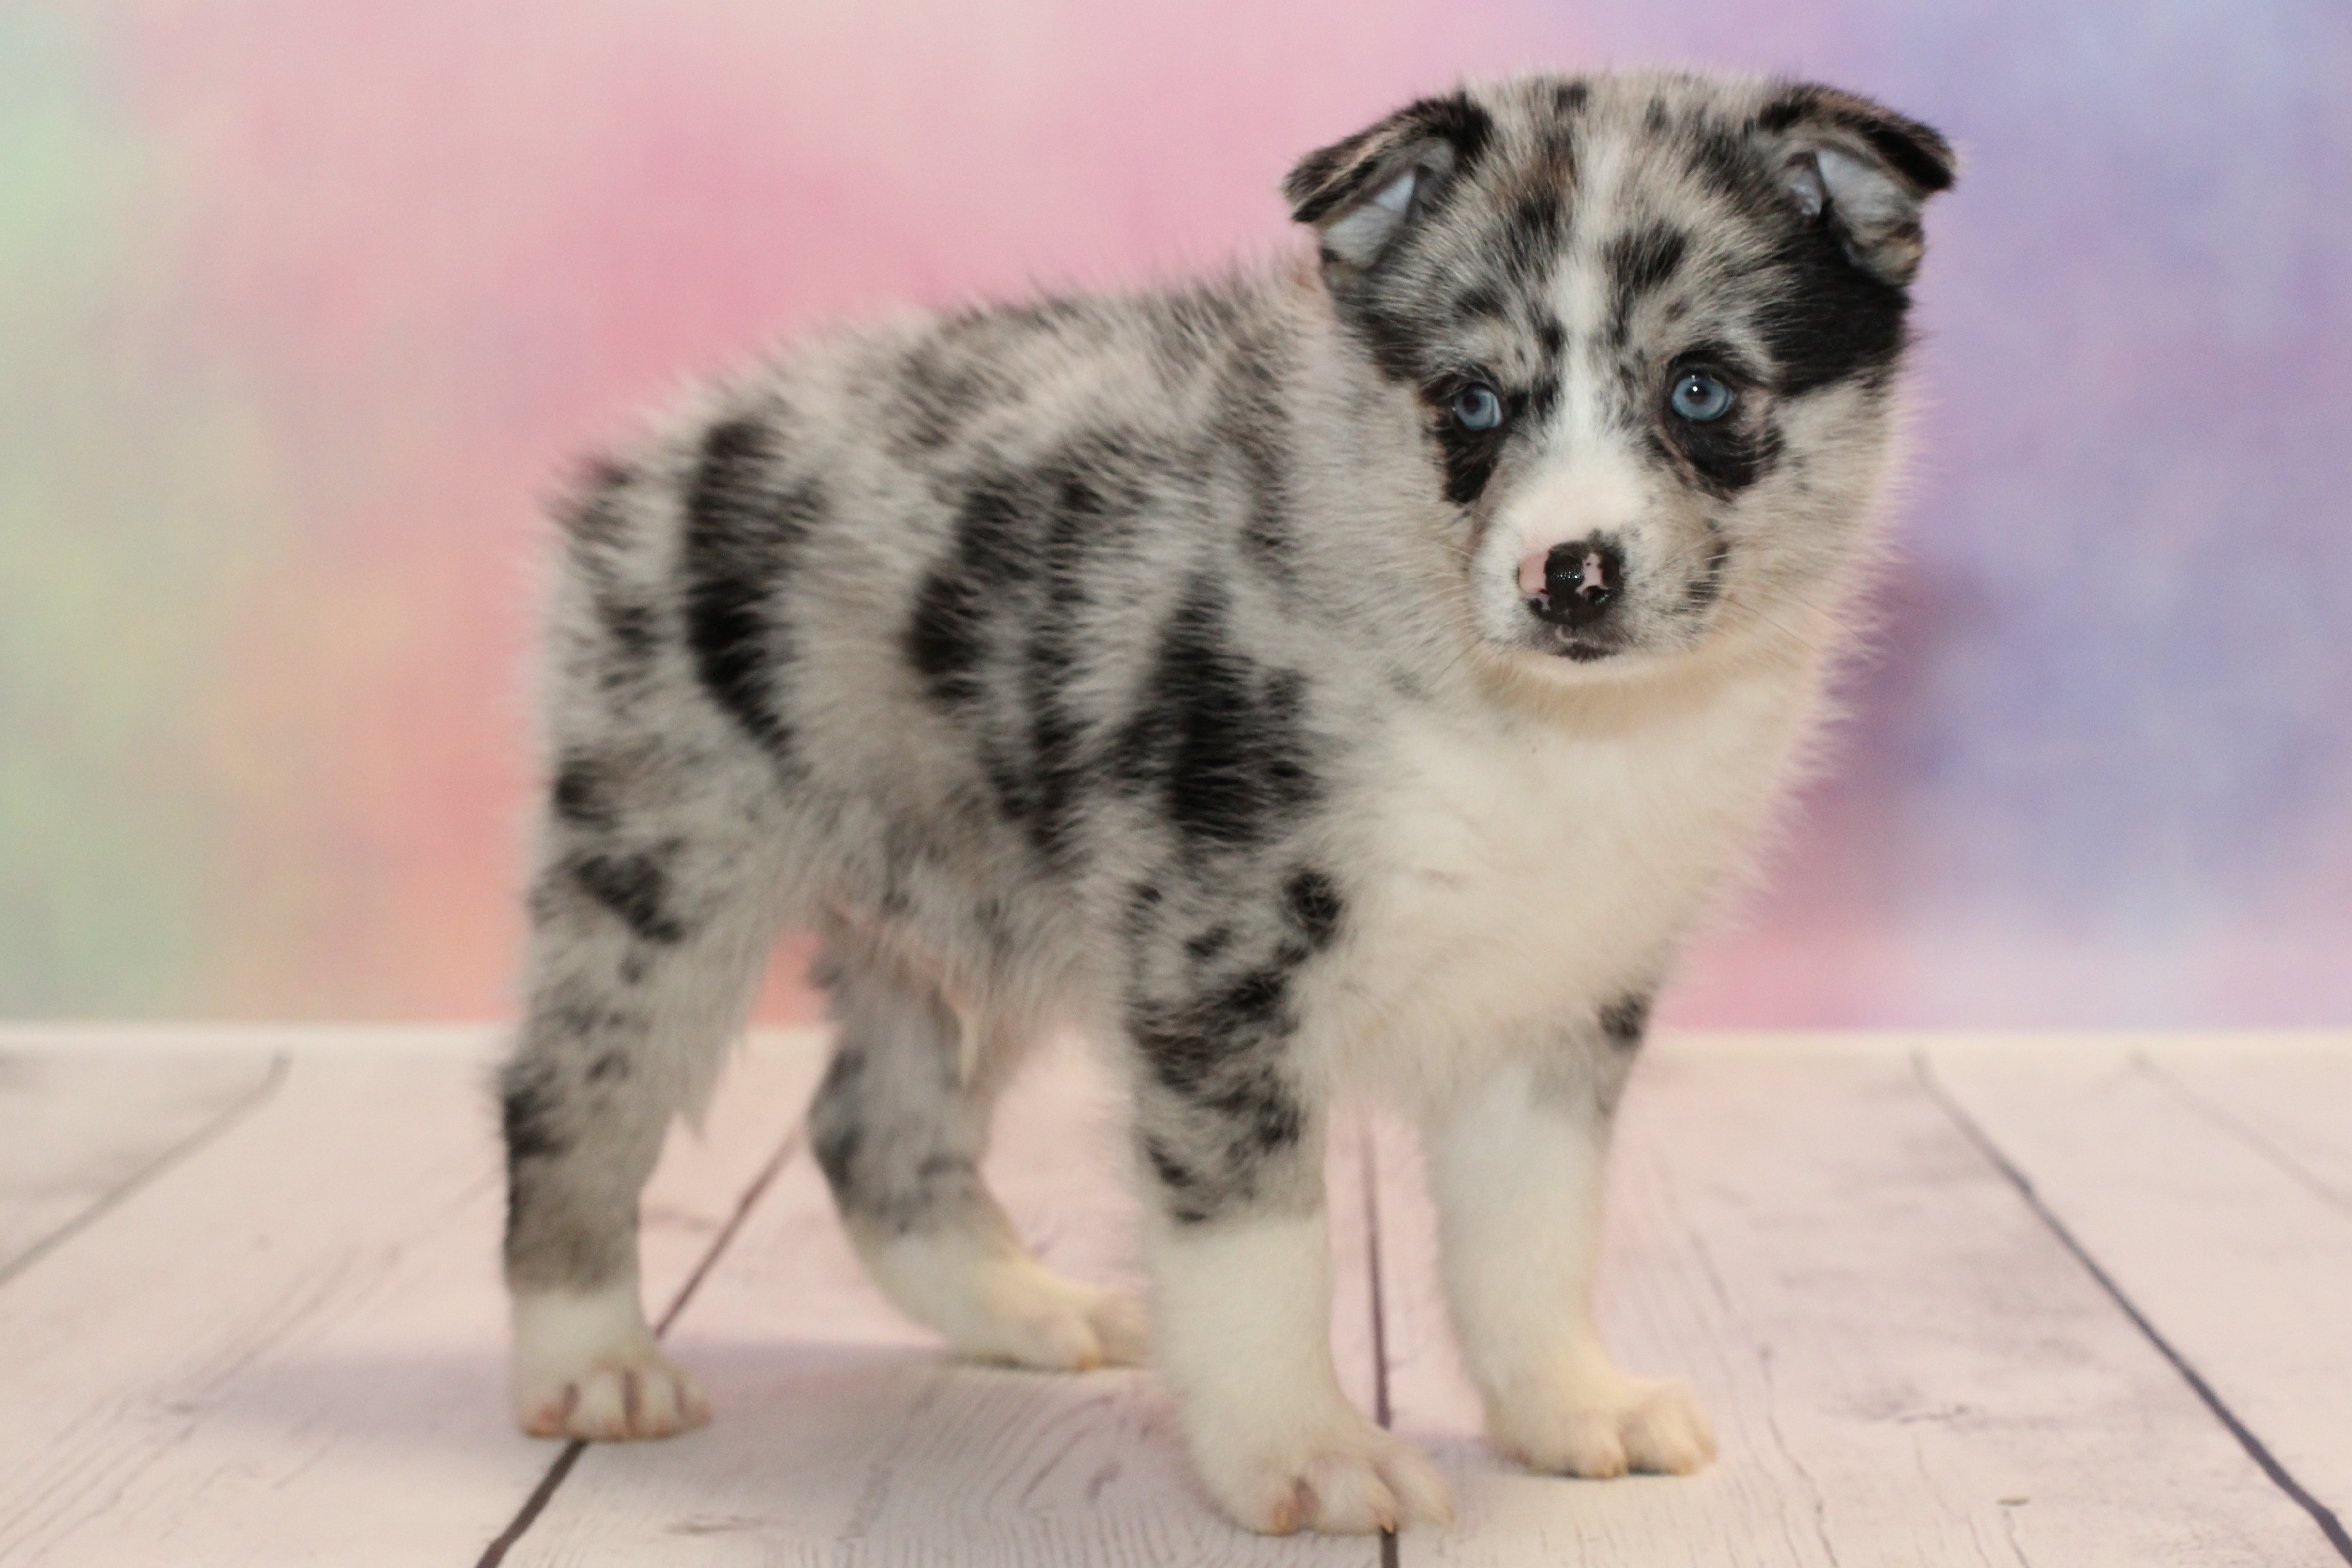 Pomsky for Sale, Could This Cross be Just What Your Family